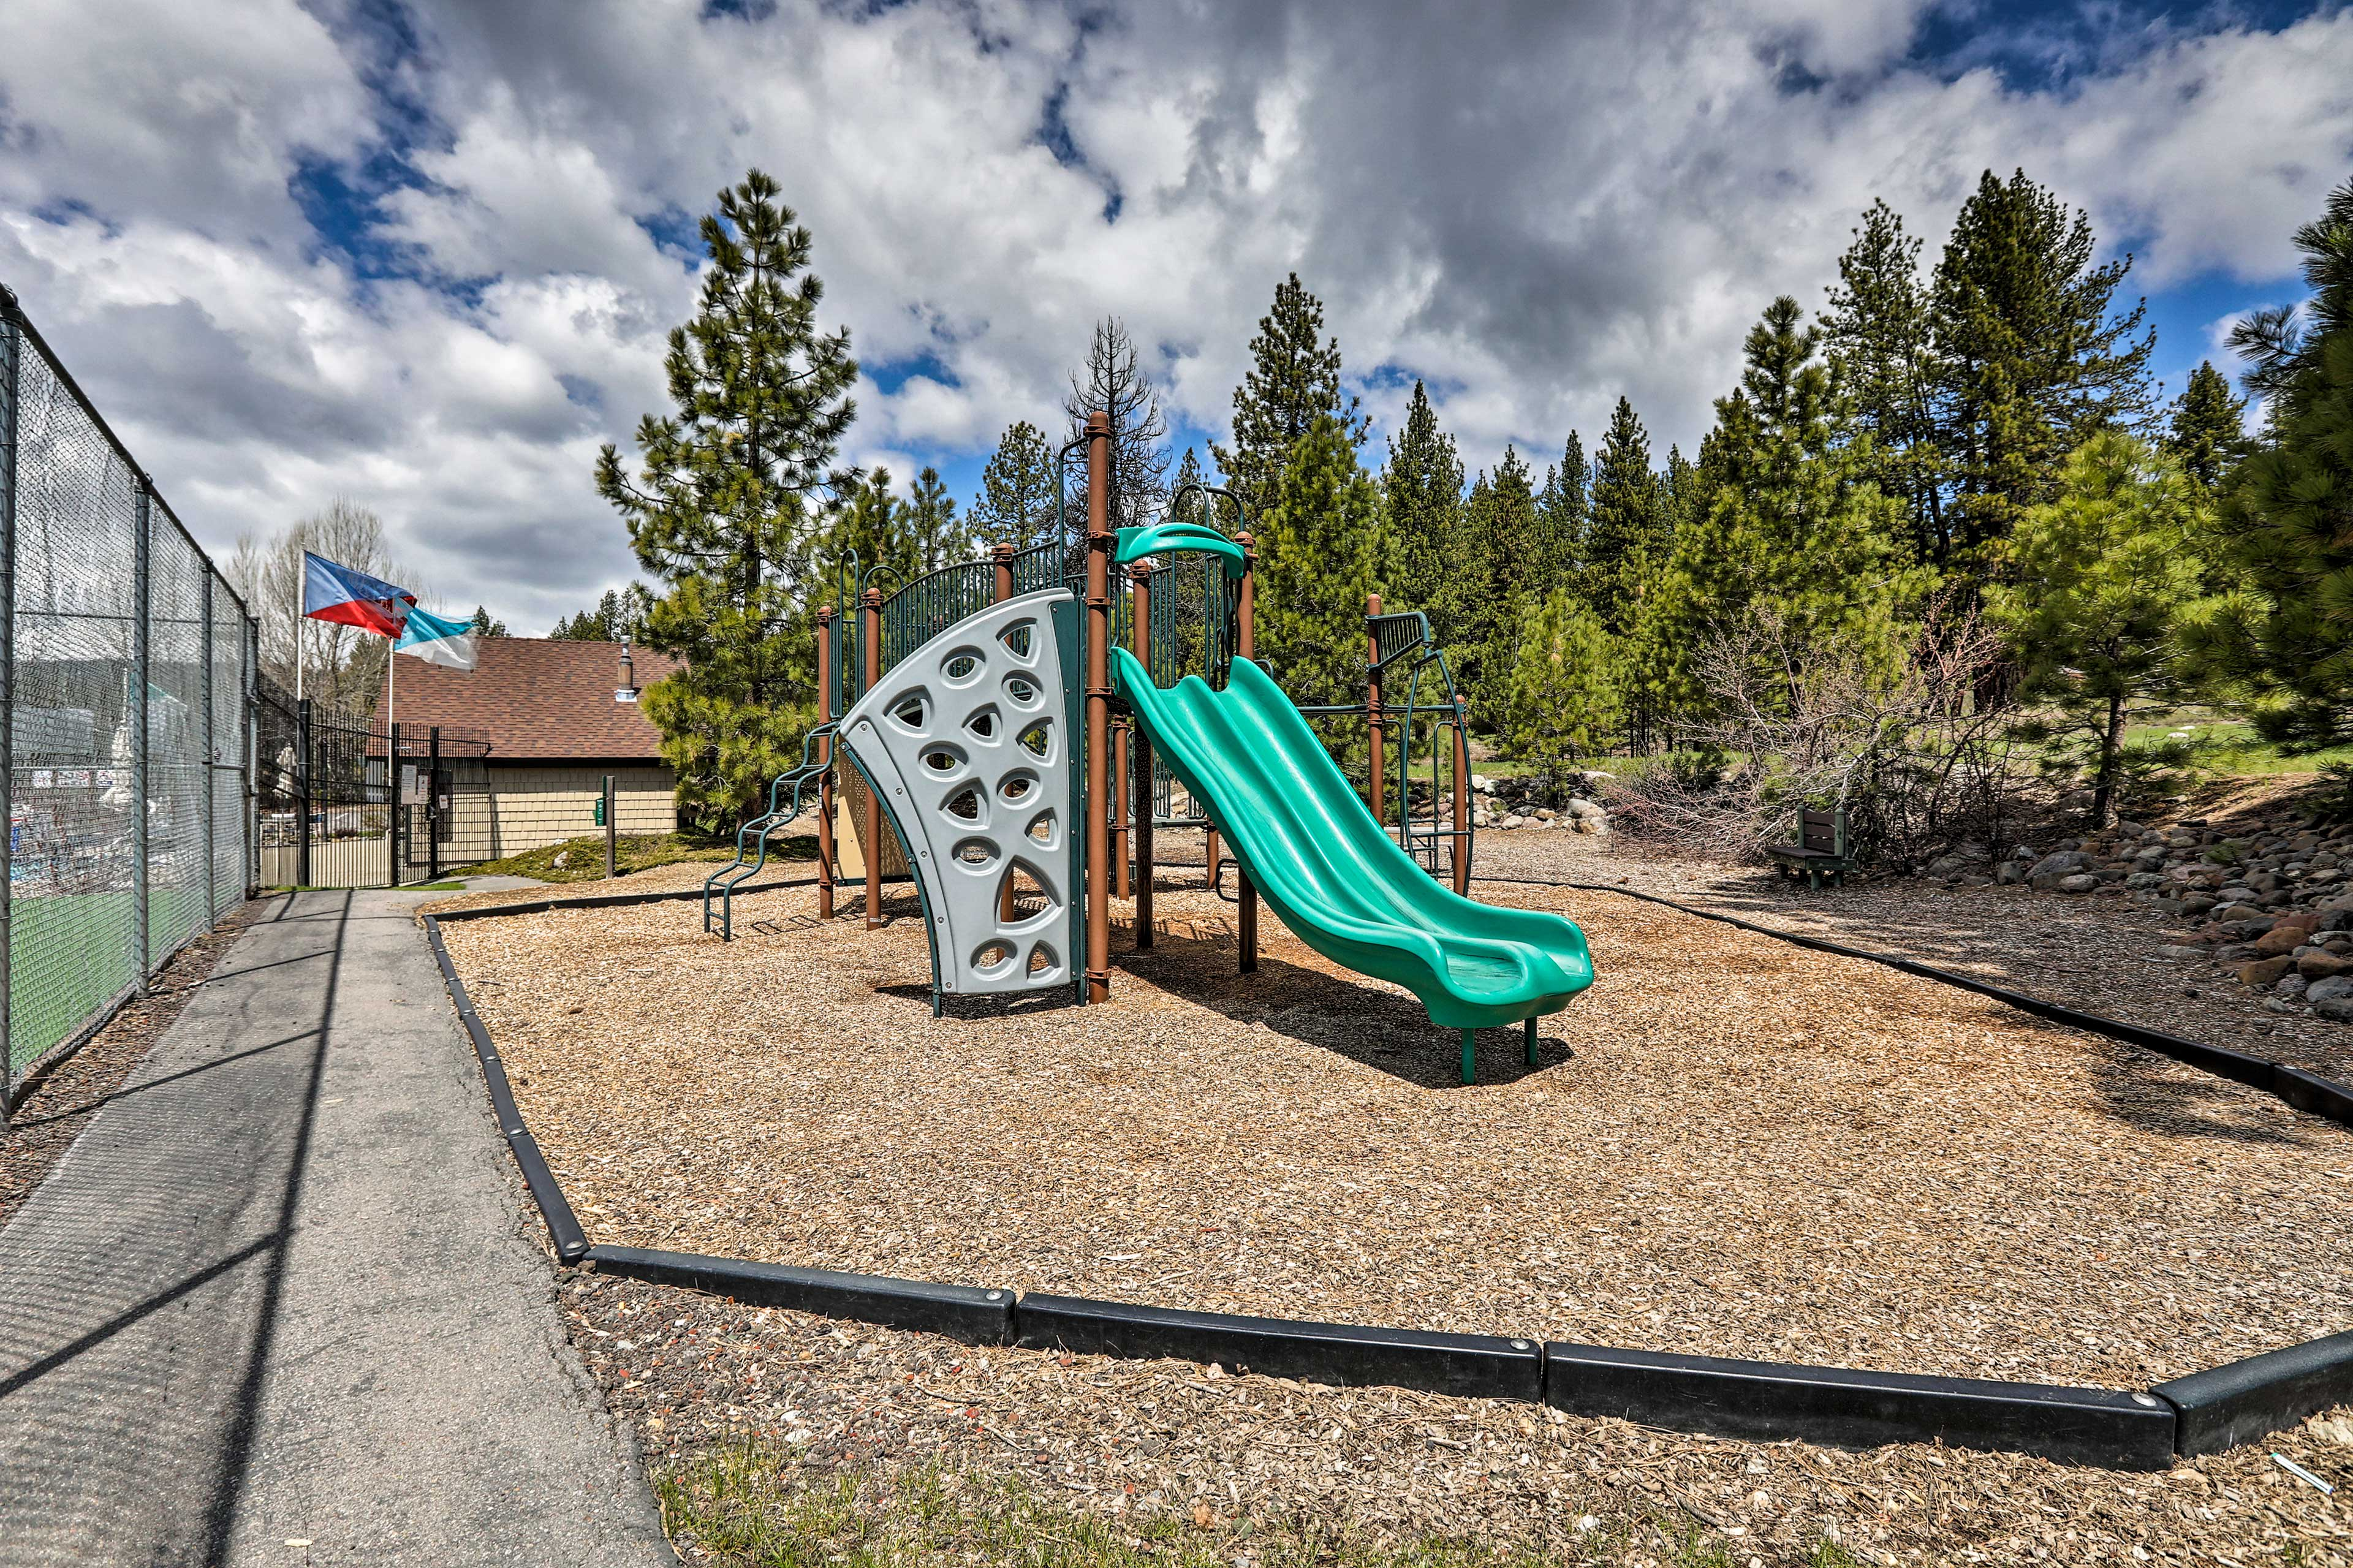 Kids will love playing on the playground.